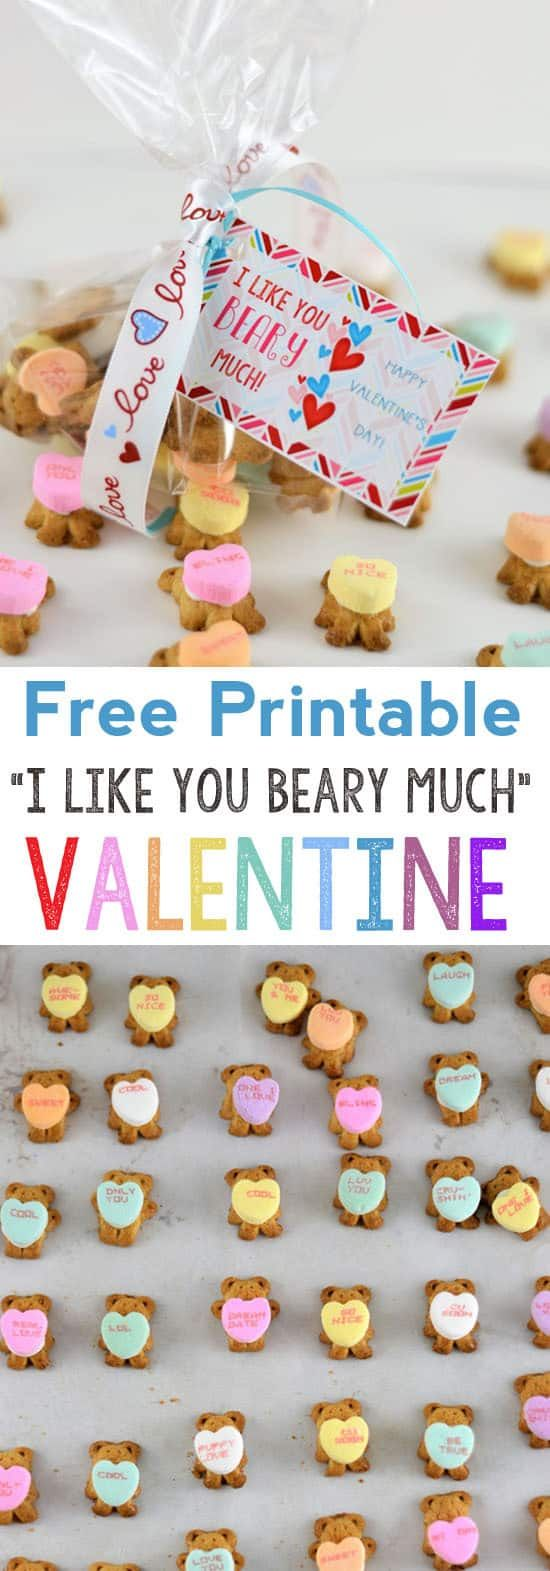 conversation hearts valentine | valentines day printables | free printable | I like you beary much | class valentines | conversation hearts | printable valentines | valentines day recipe